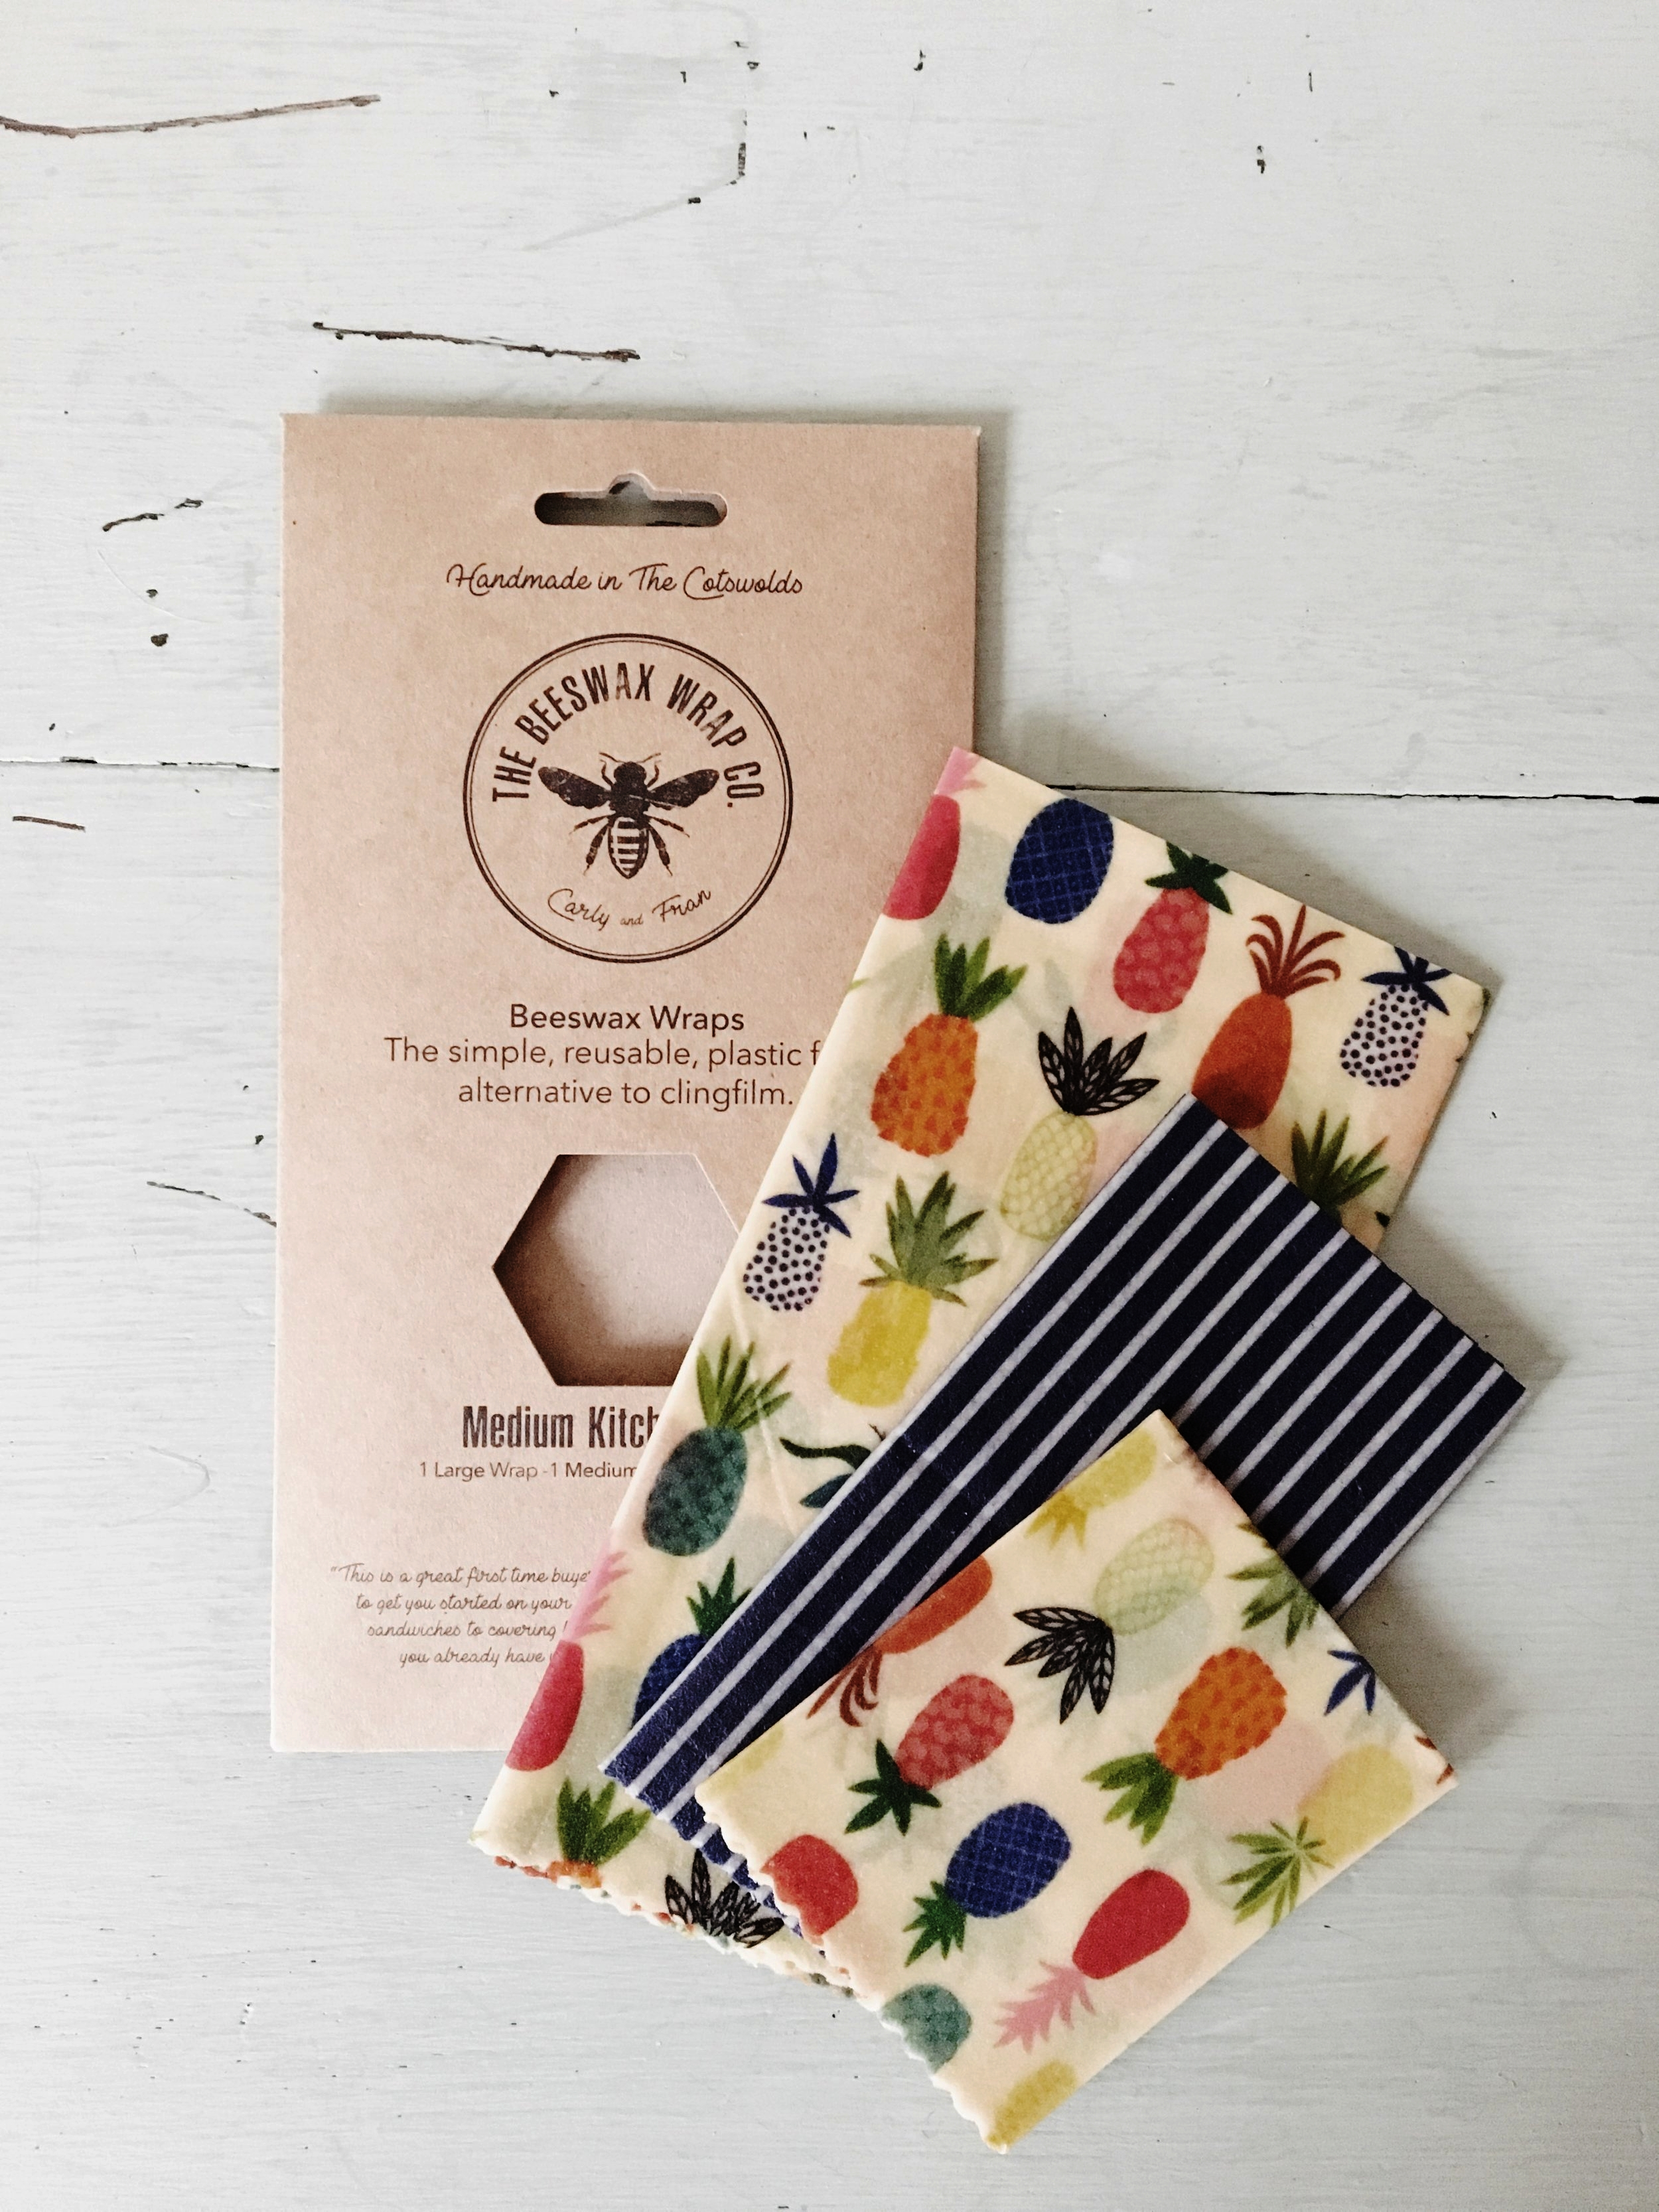 Medium Kitchen Beeswax Wrap Set by The Beeswax Wrap Co. £20 [Get 10% off your wraps with code ELSA10 until end of November]